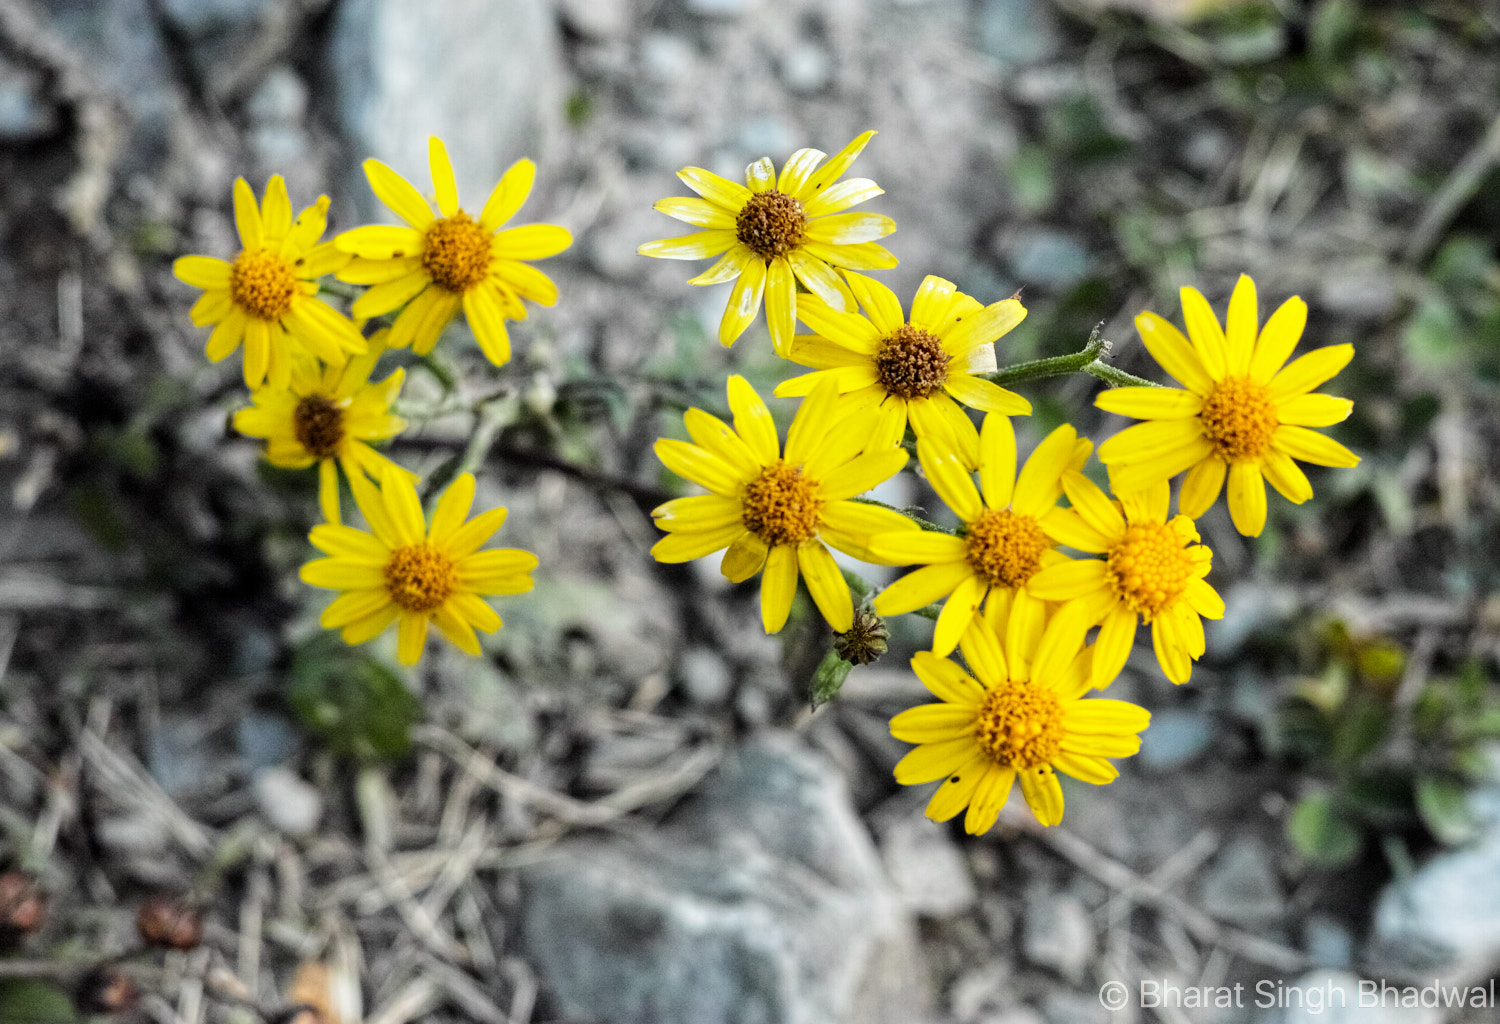 Jalsu Pass trail is often referred to as the Himachal's flower valley. I counted at least sixteen different types of flowers on this trail. A floriculturist's dream come true.